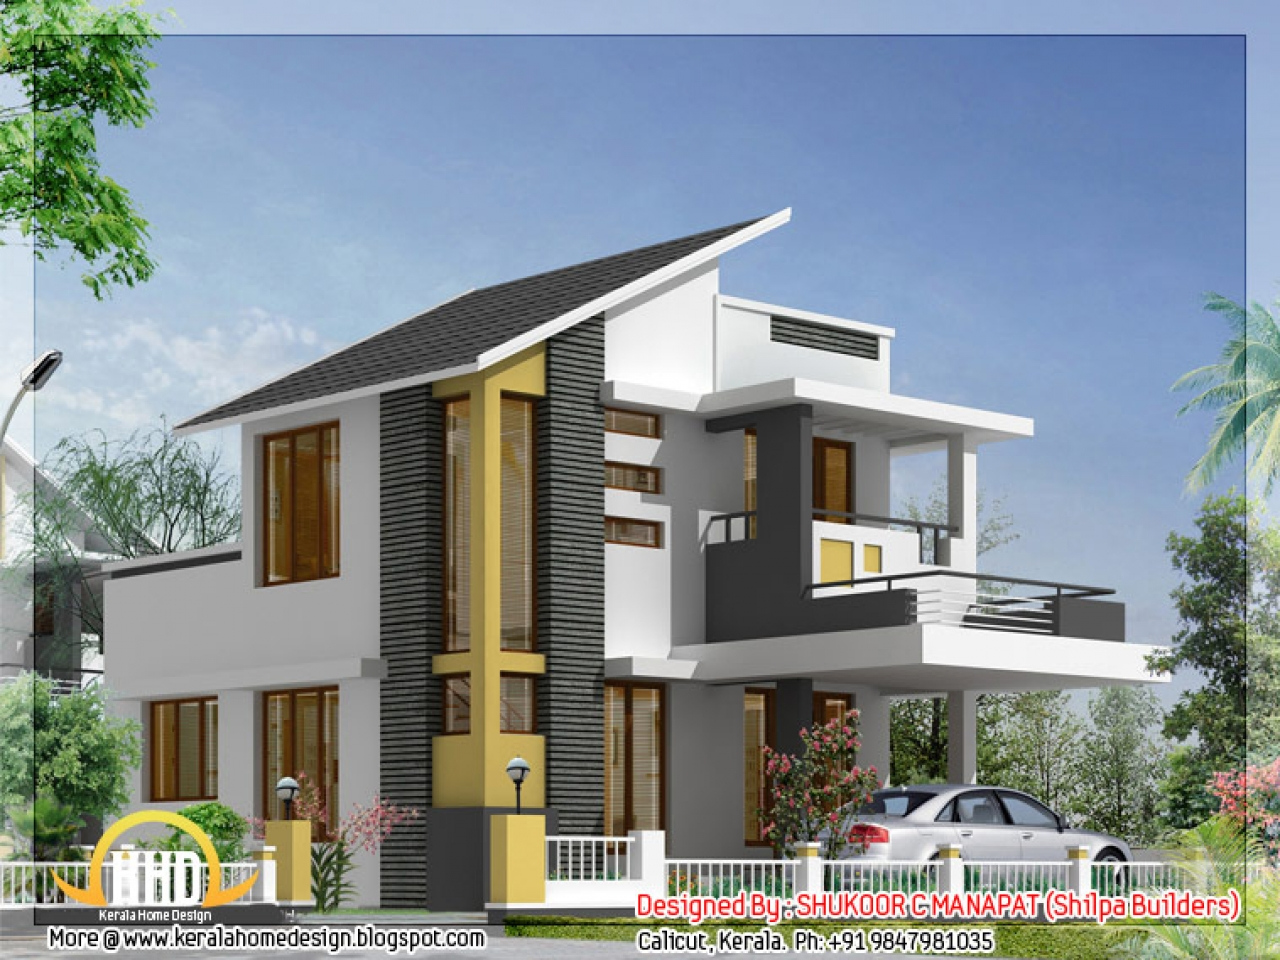 low cost house designs india low cost house kits lrg 25ef8d4170bff7ac - 48+ Simple Front Design Of House In Small Budget PNG